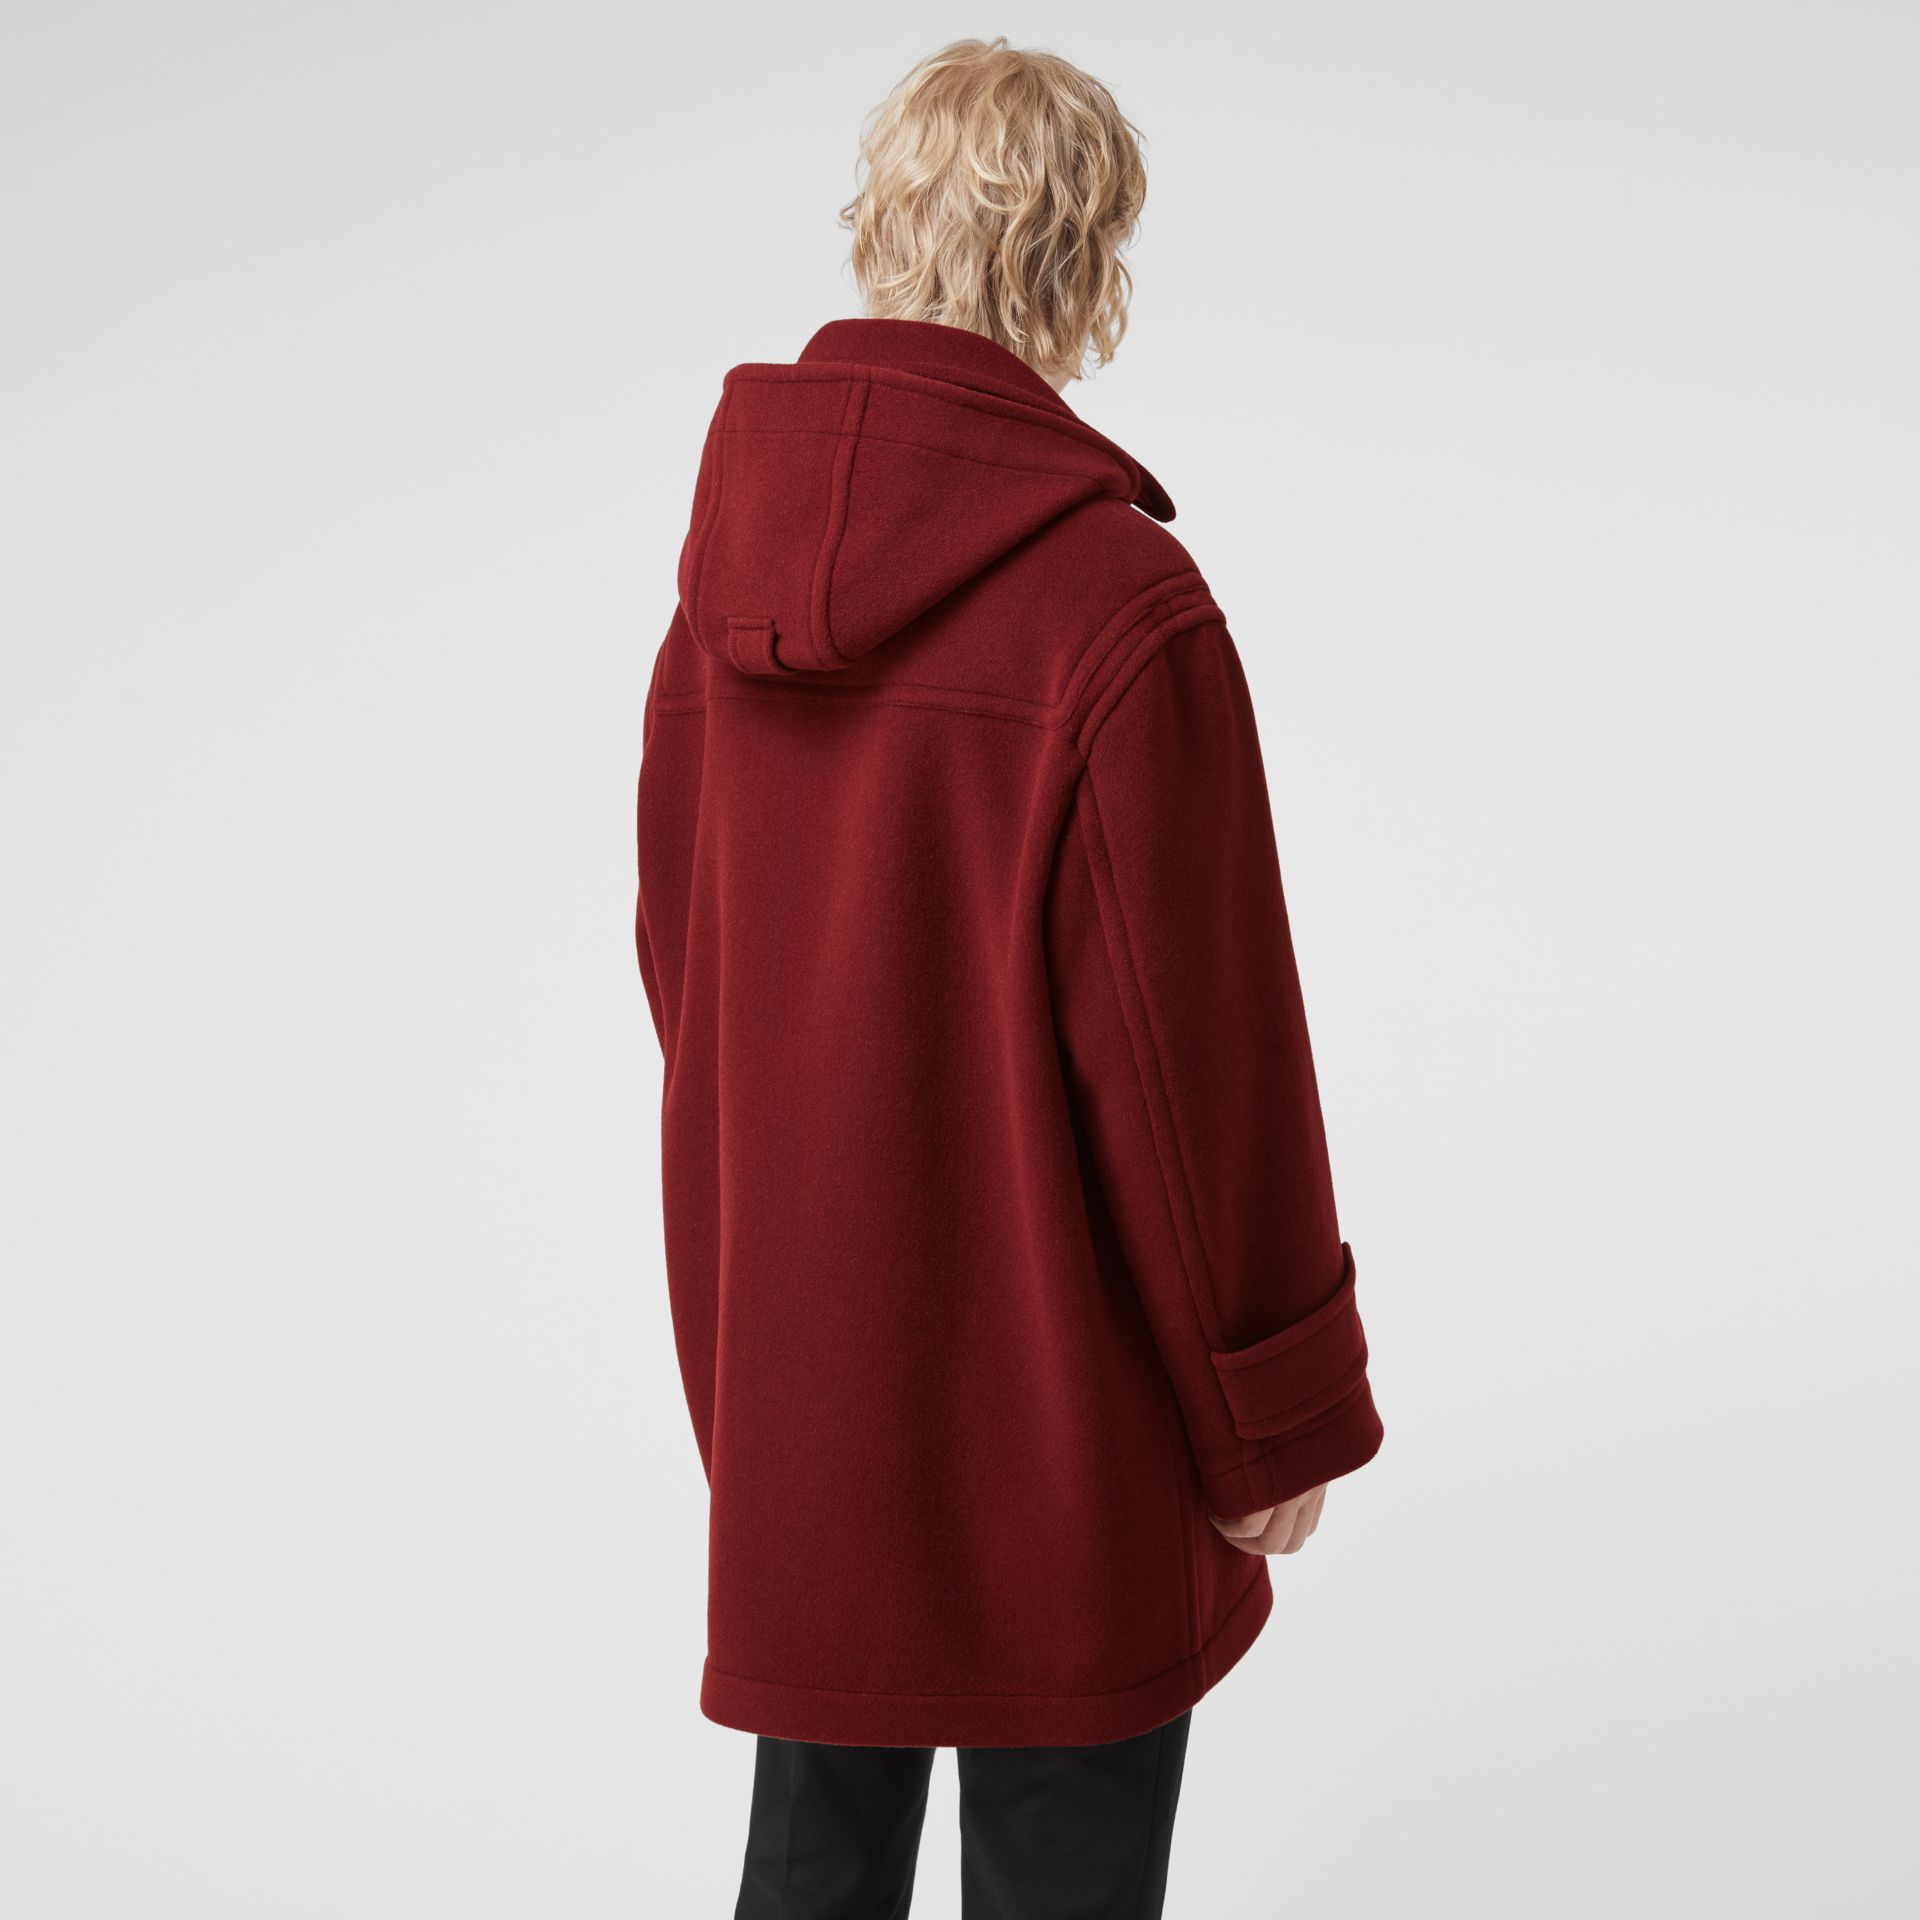 Gosha x Burberry Oversized Duffle Coat in Claret | Burberry - gallery image 5